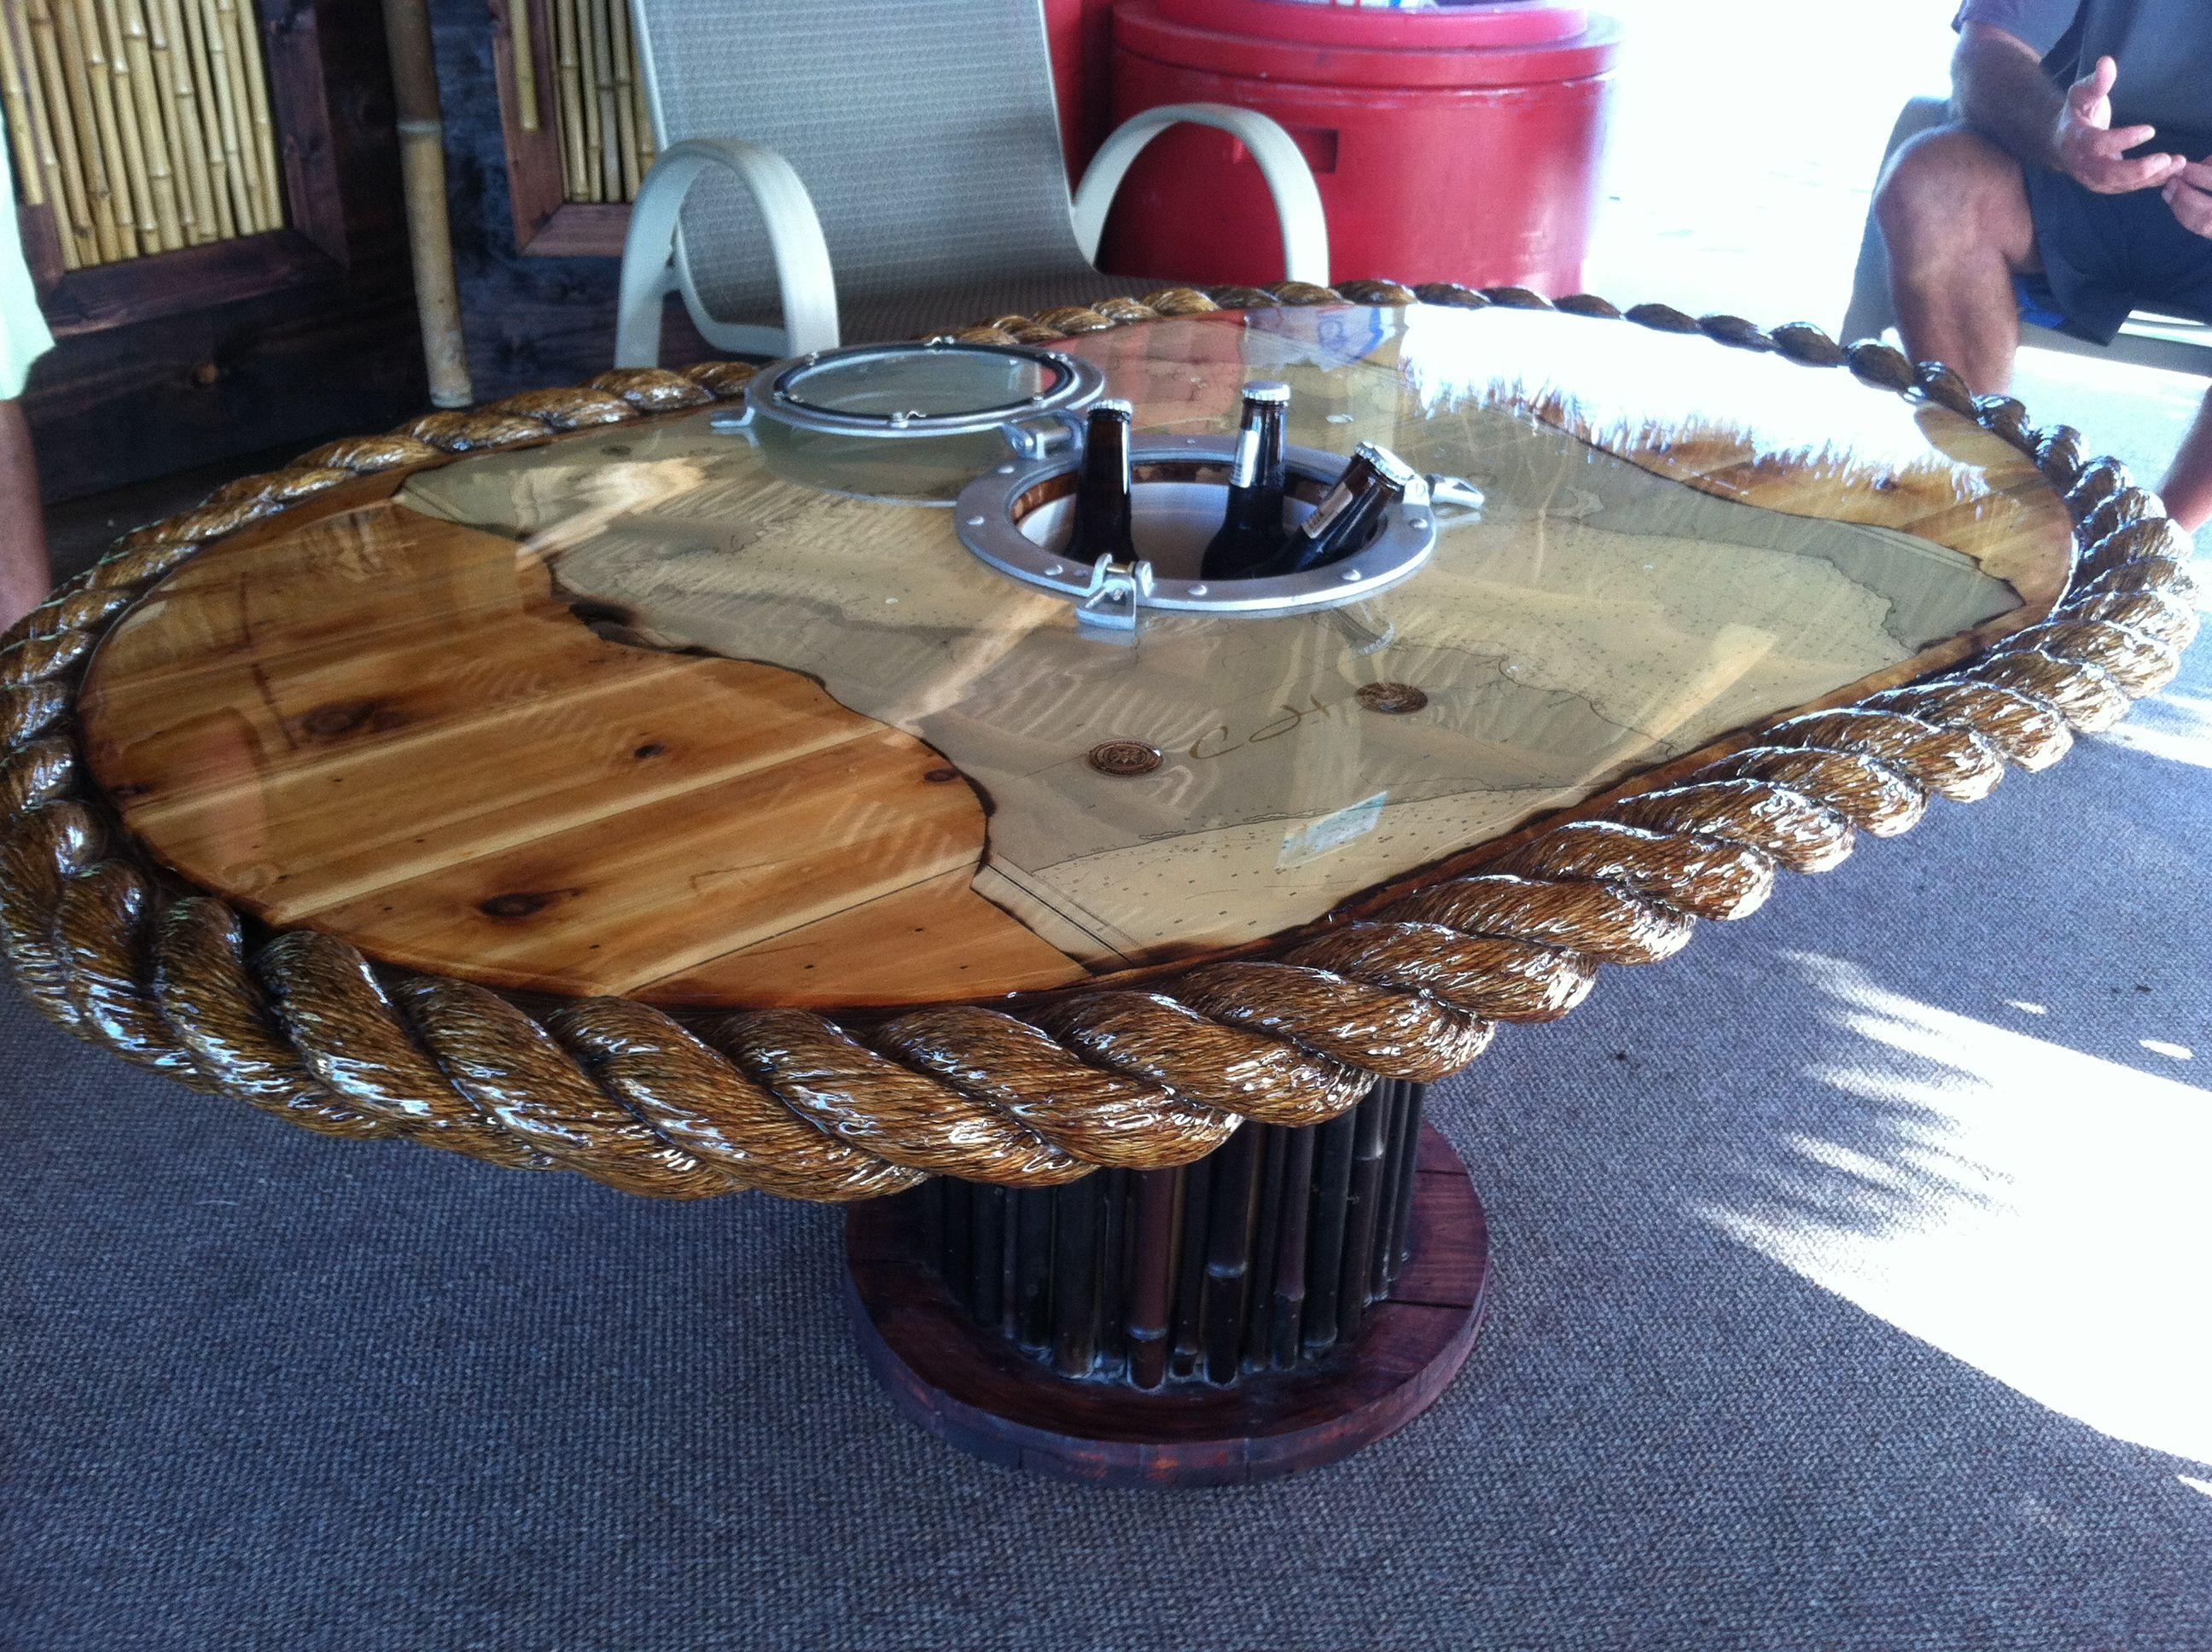 Beer Cooler Coffee Table Nautical Table With A Port Hole Window Beer Cooler In The Middle